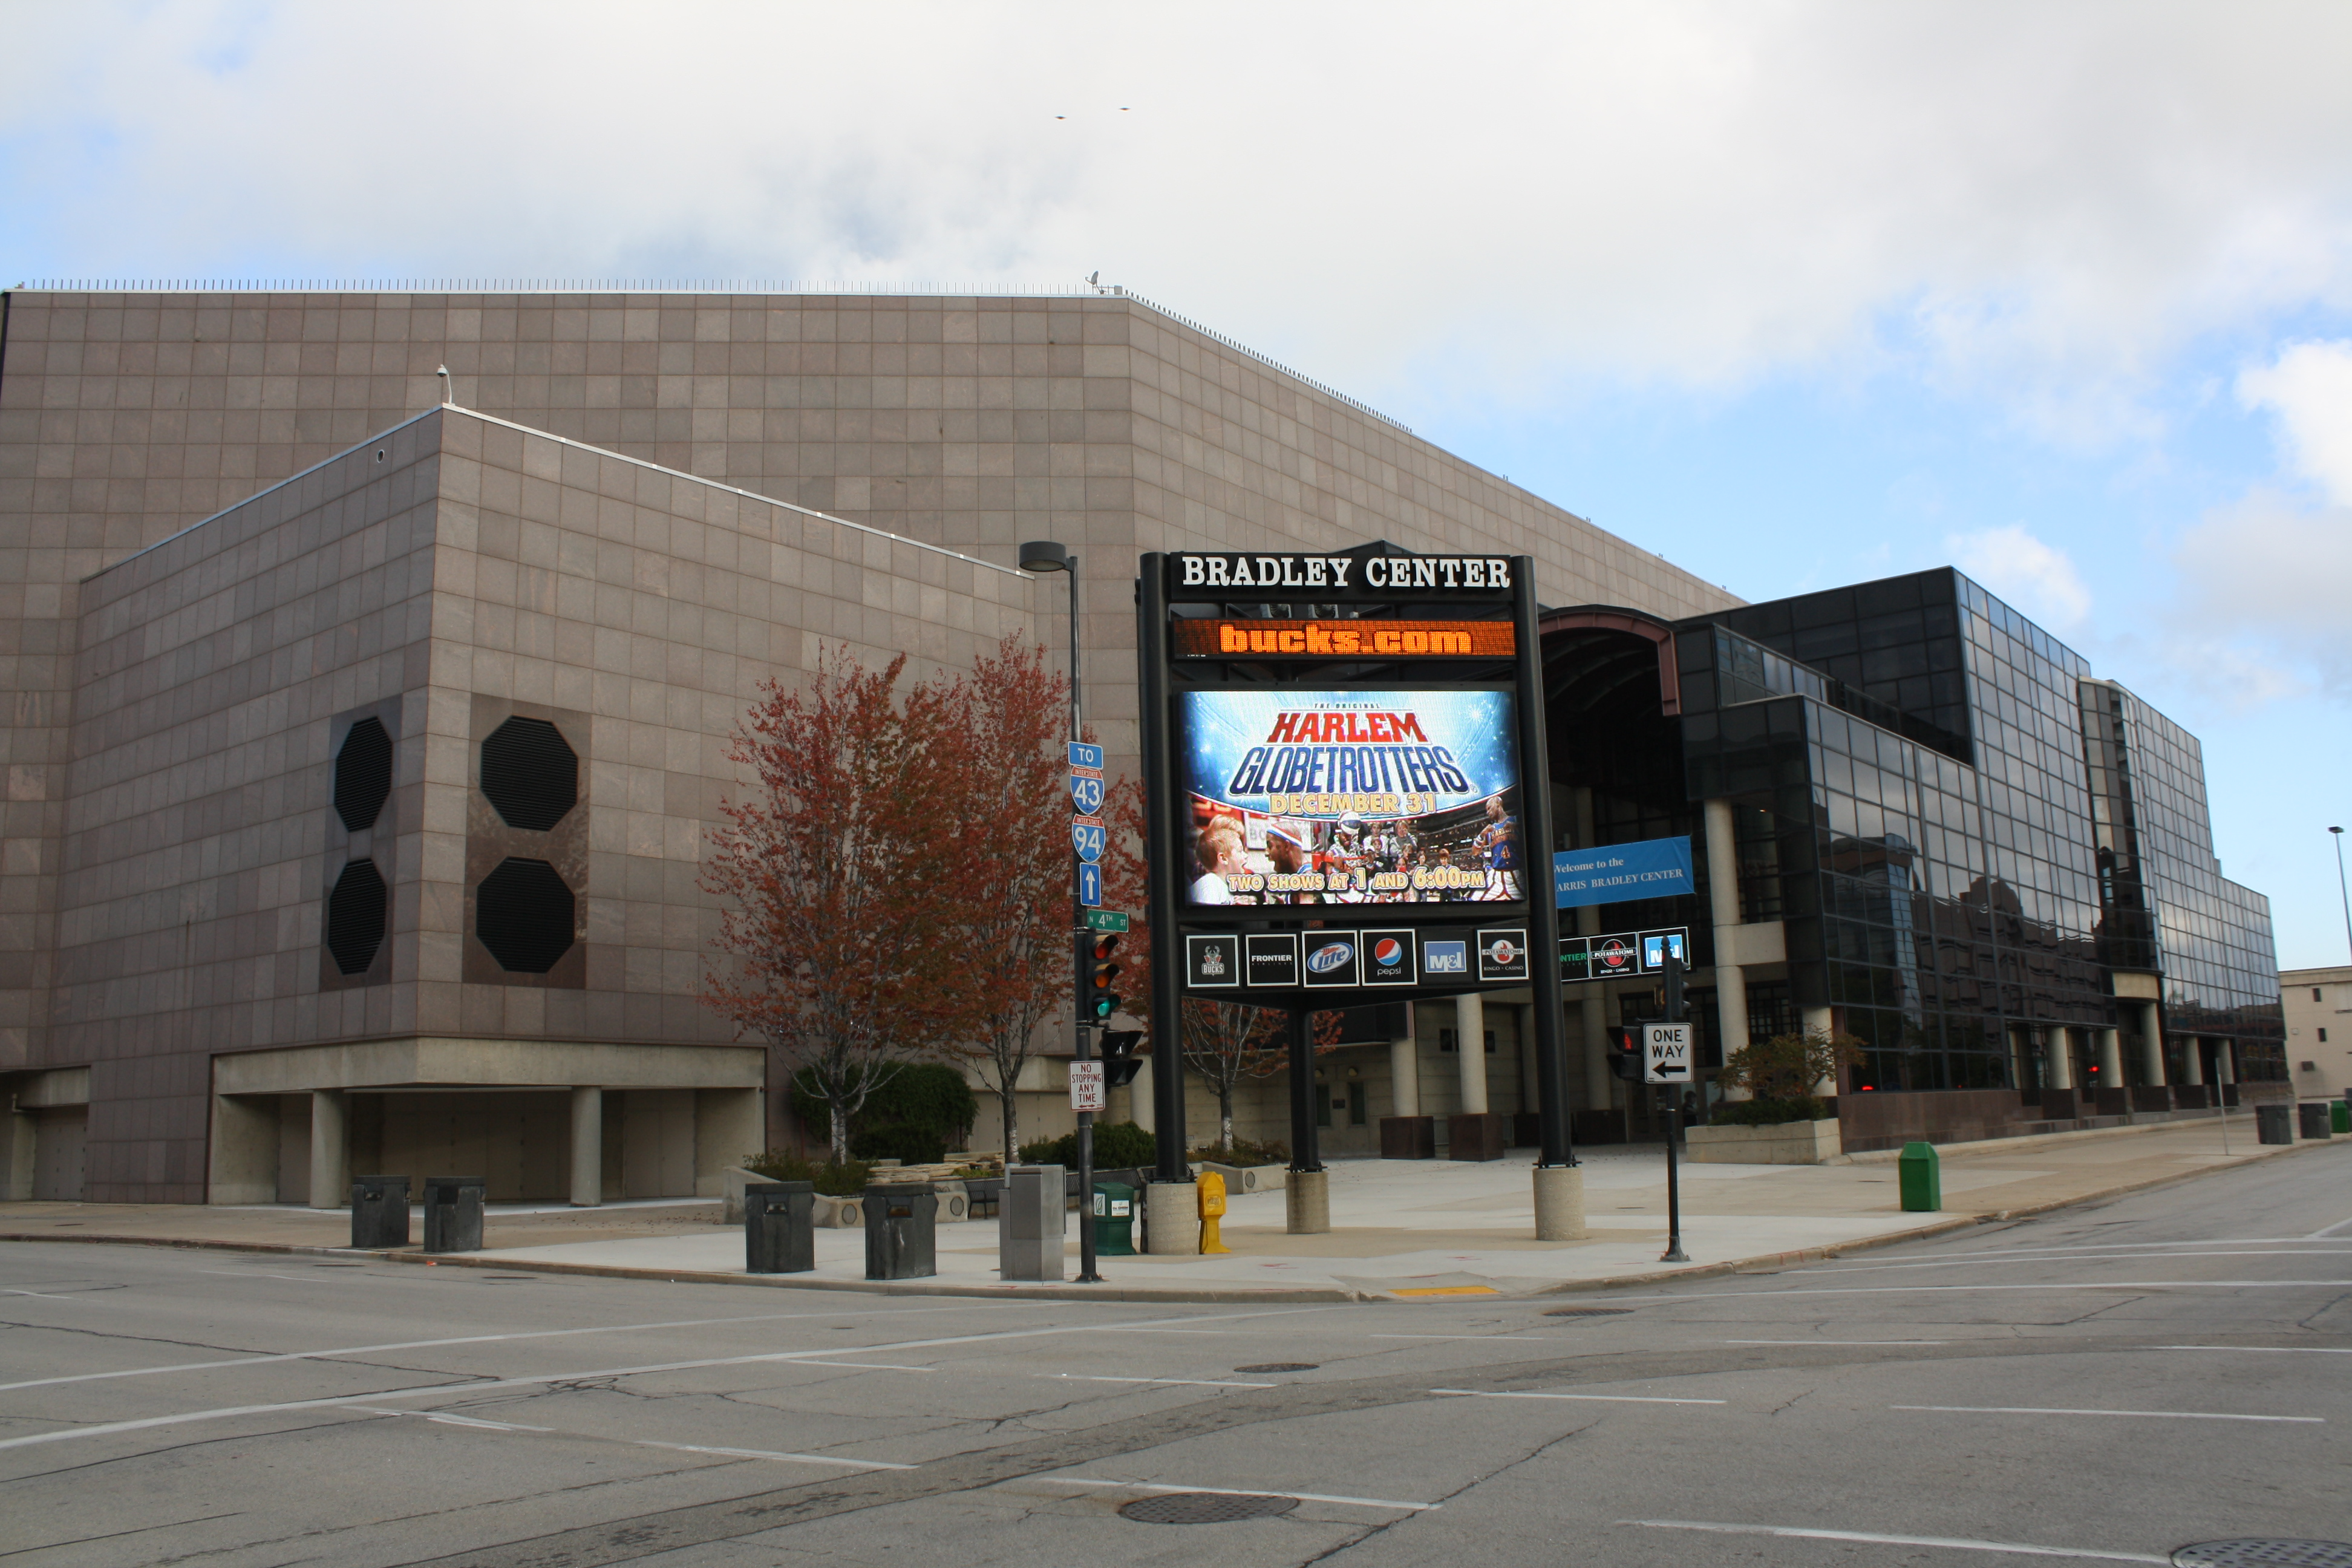 http://upload.wikimedia.org/wikipedia/commons/7/76/Bradley_Center_SE_Entrance.jpg